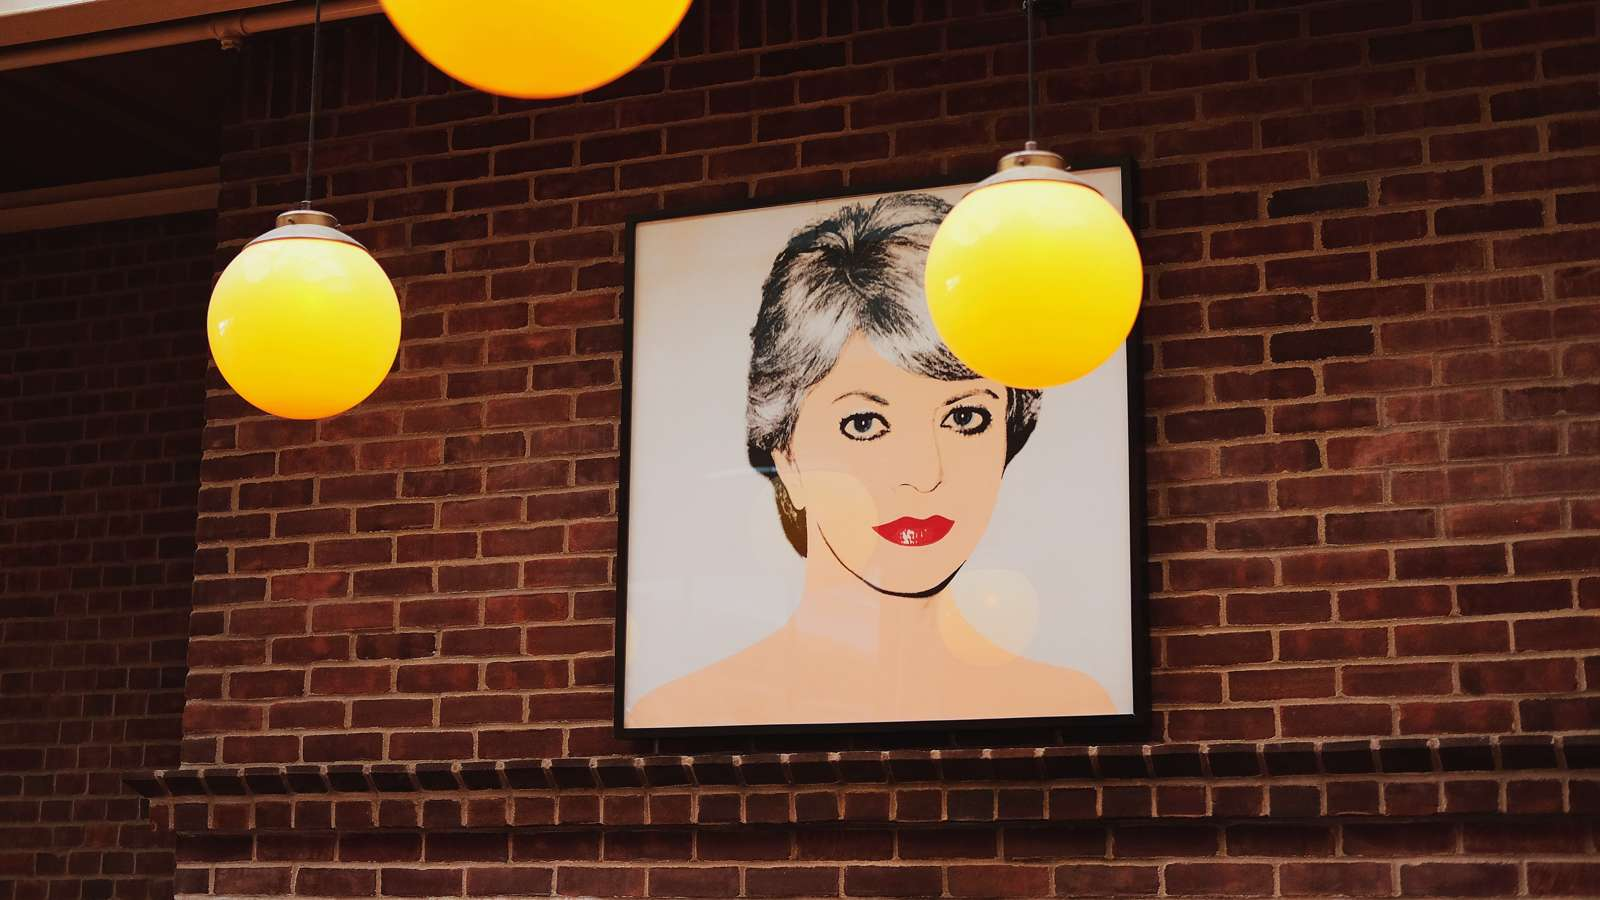 Hung over the fireplace in the Private Dining Room at Cindy's, this original Andy Warhol portrait was done of Cindy Pritzker in 1982.